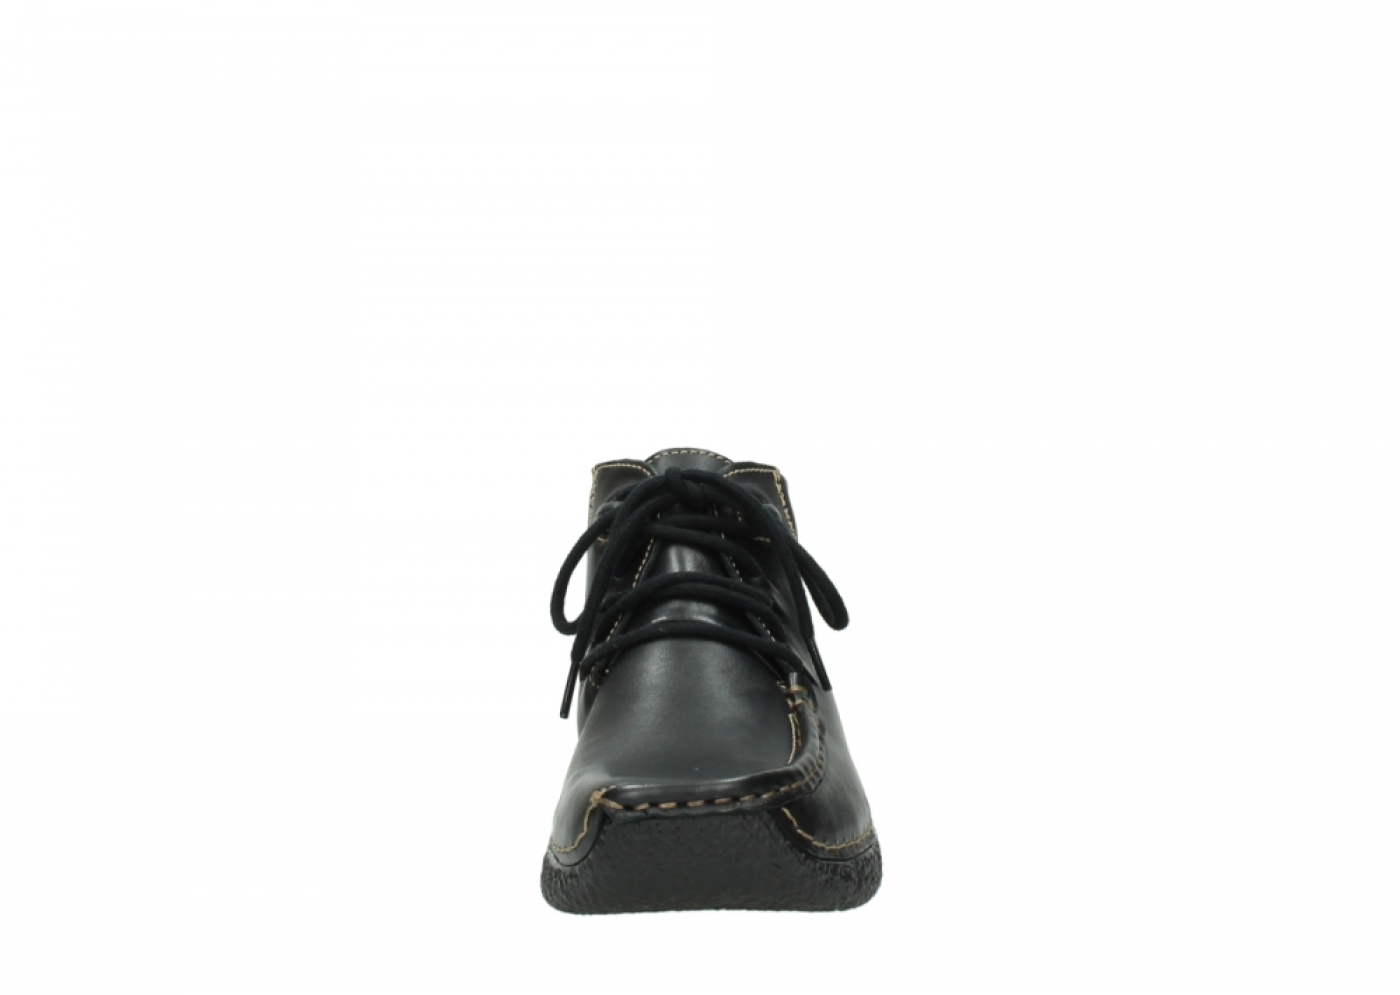 Black Seamy Biggest 06253 Now Order Wolky Moc Shoes Leather xgqIwwC4E